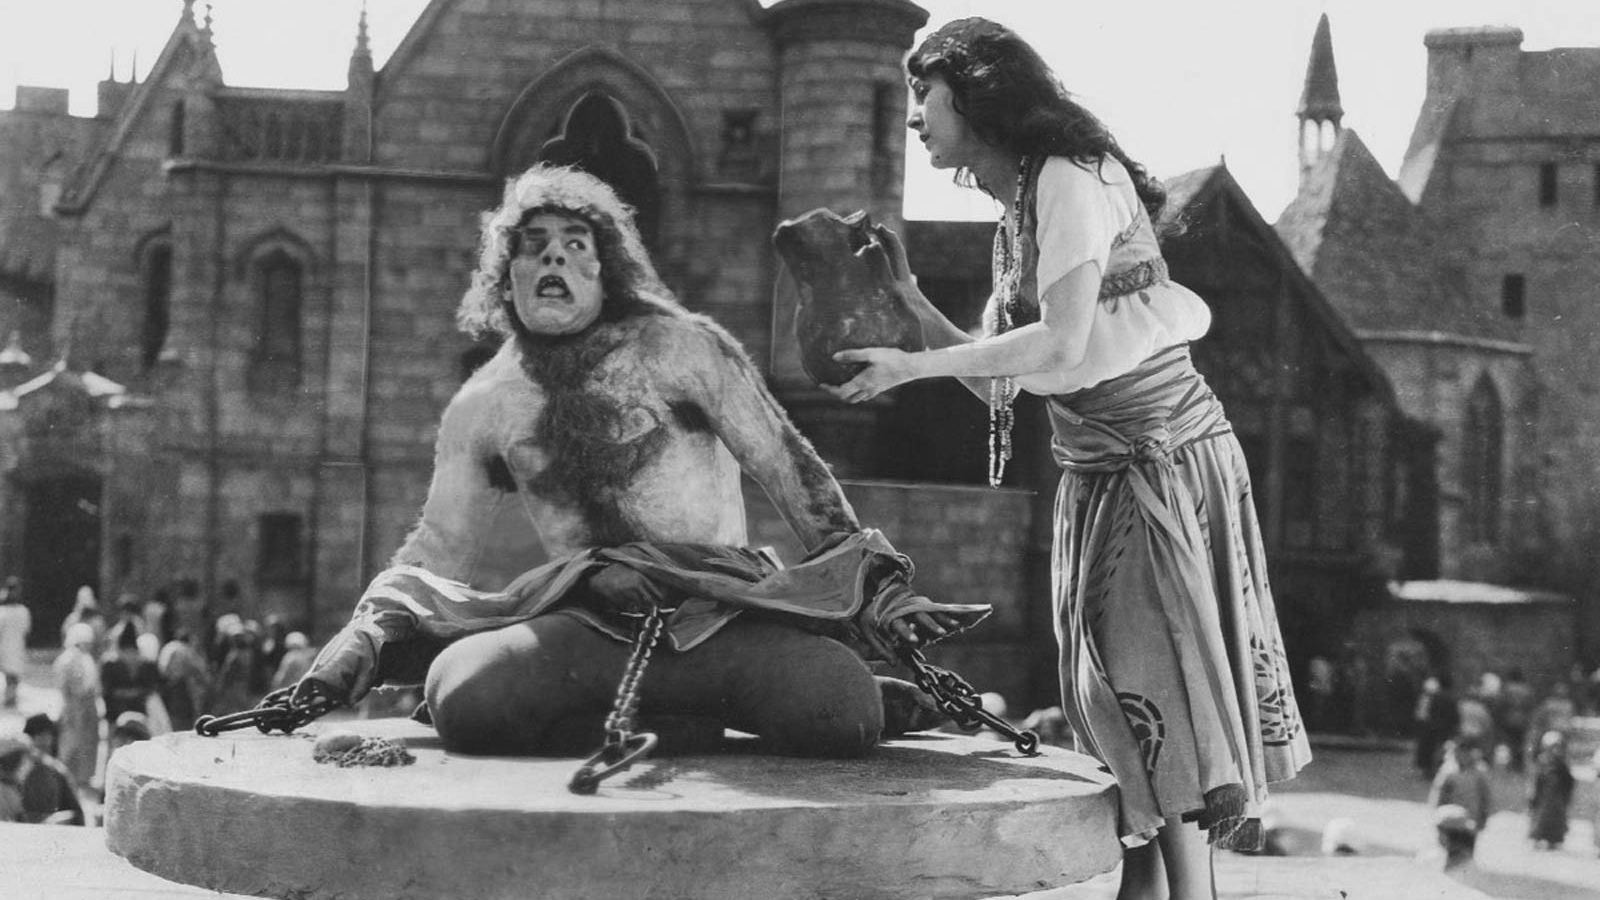 #46) The Hunchback of Notre Dame - (1923 - dir. Wallace Worsley)